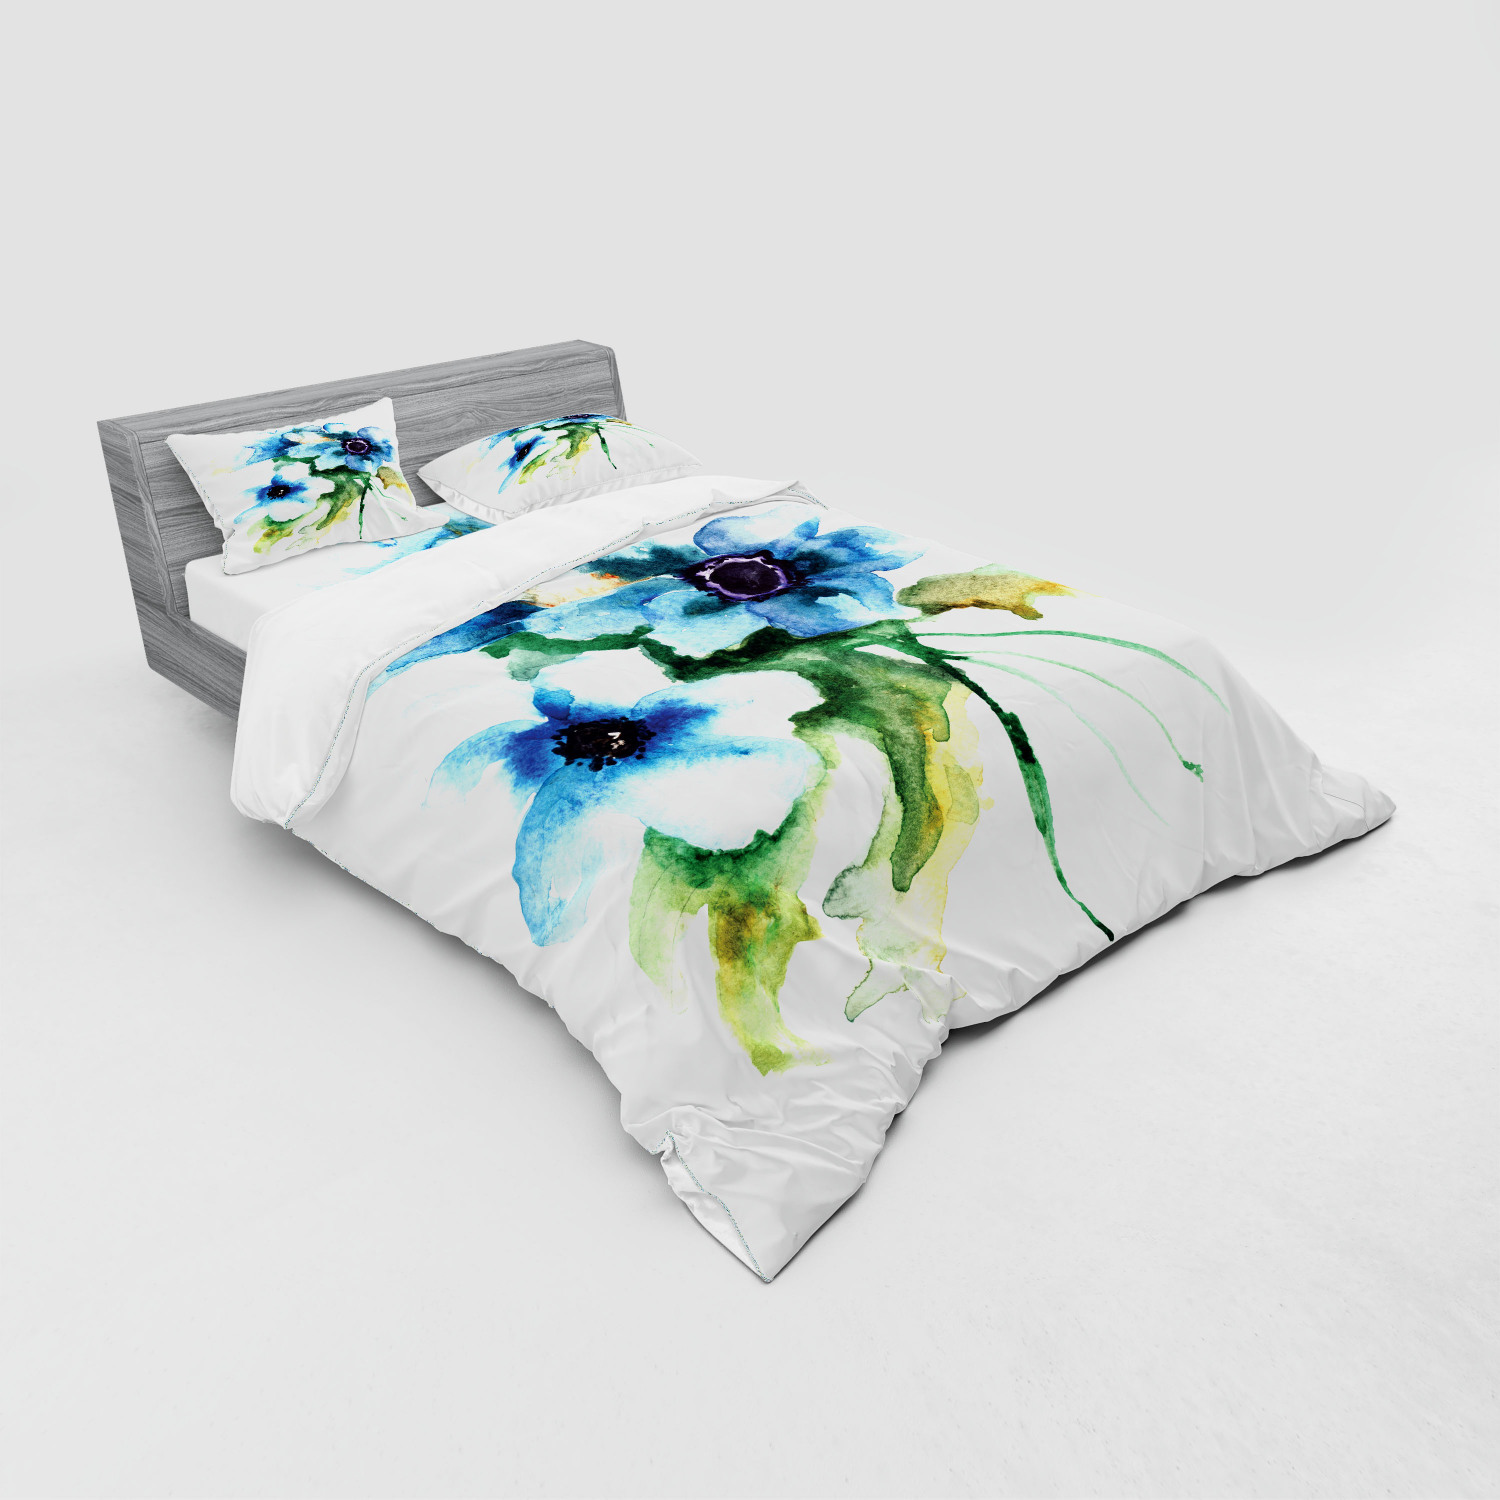 thumbnail 123 - Ambesonne Summer Bedding Set Duvet Cover Sham Fitted Sheet in 3 Sizes